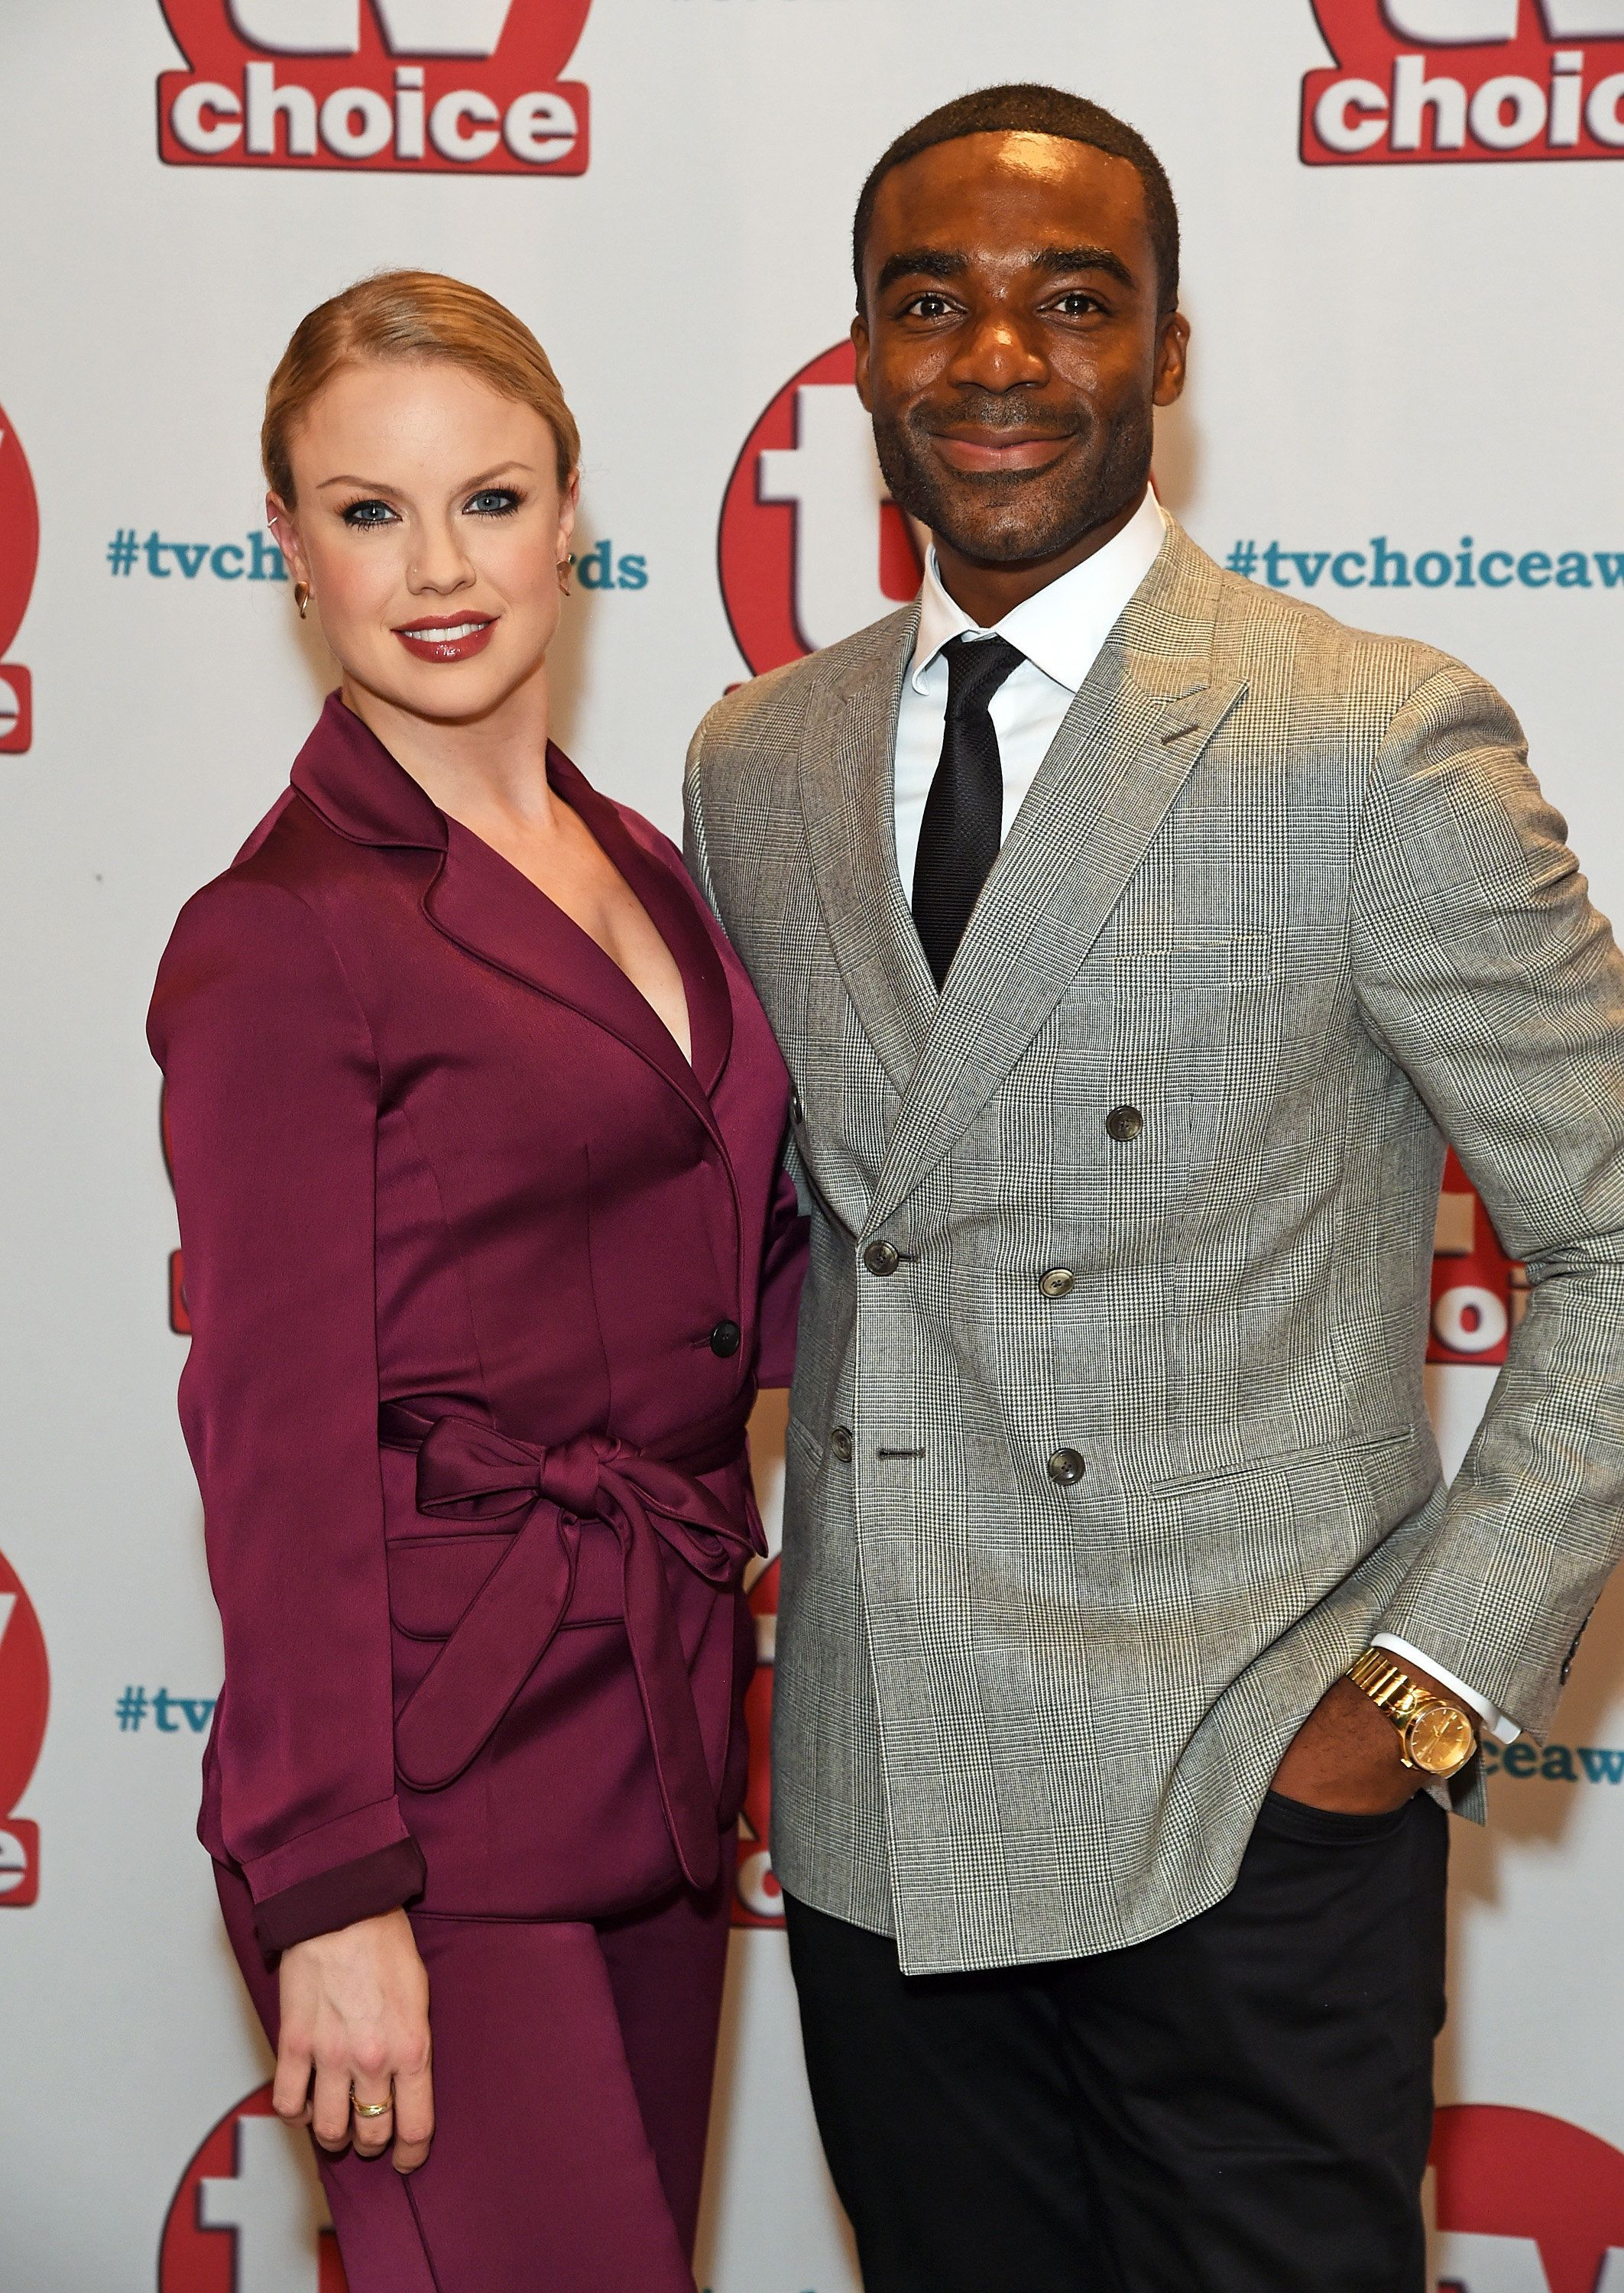 'Strictly' Winners Ore Oduba And Joanne Clifton Name Their Favourites To Win This